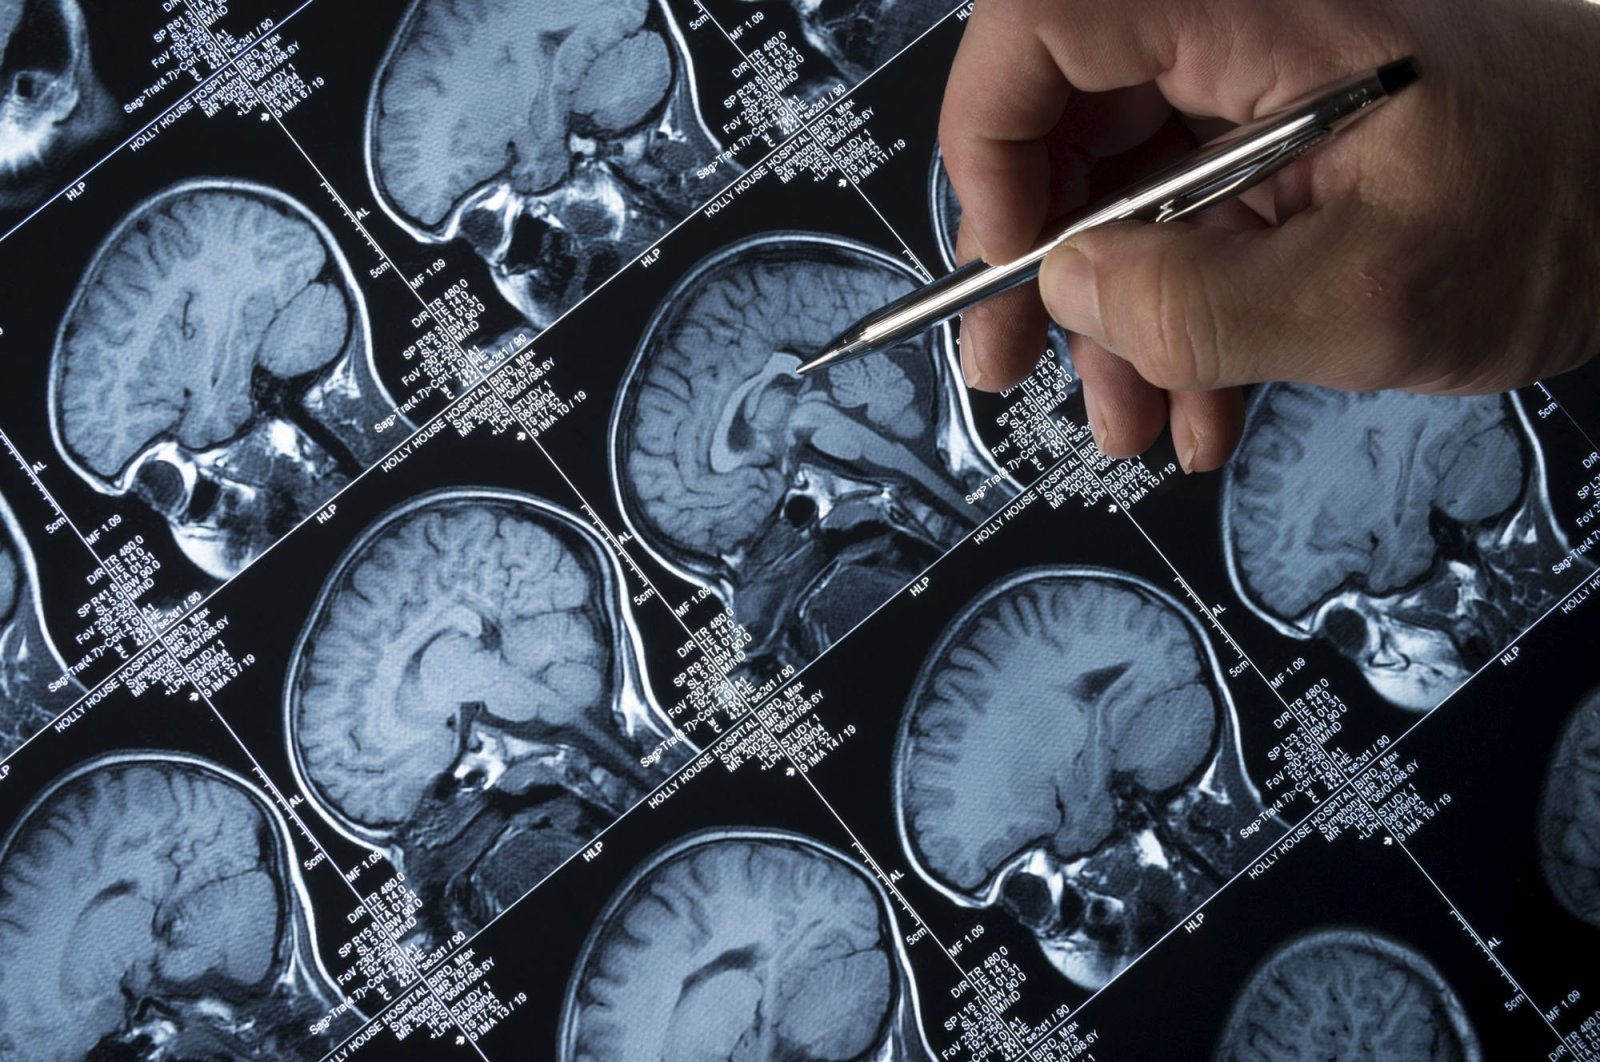 A doctor analyzes the magnetic resonance image (MRI) brain scan of the head and skull of a person. (Getty Images)